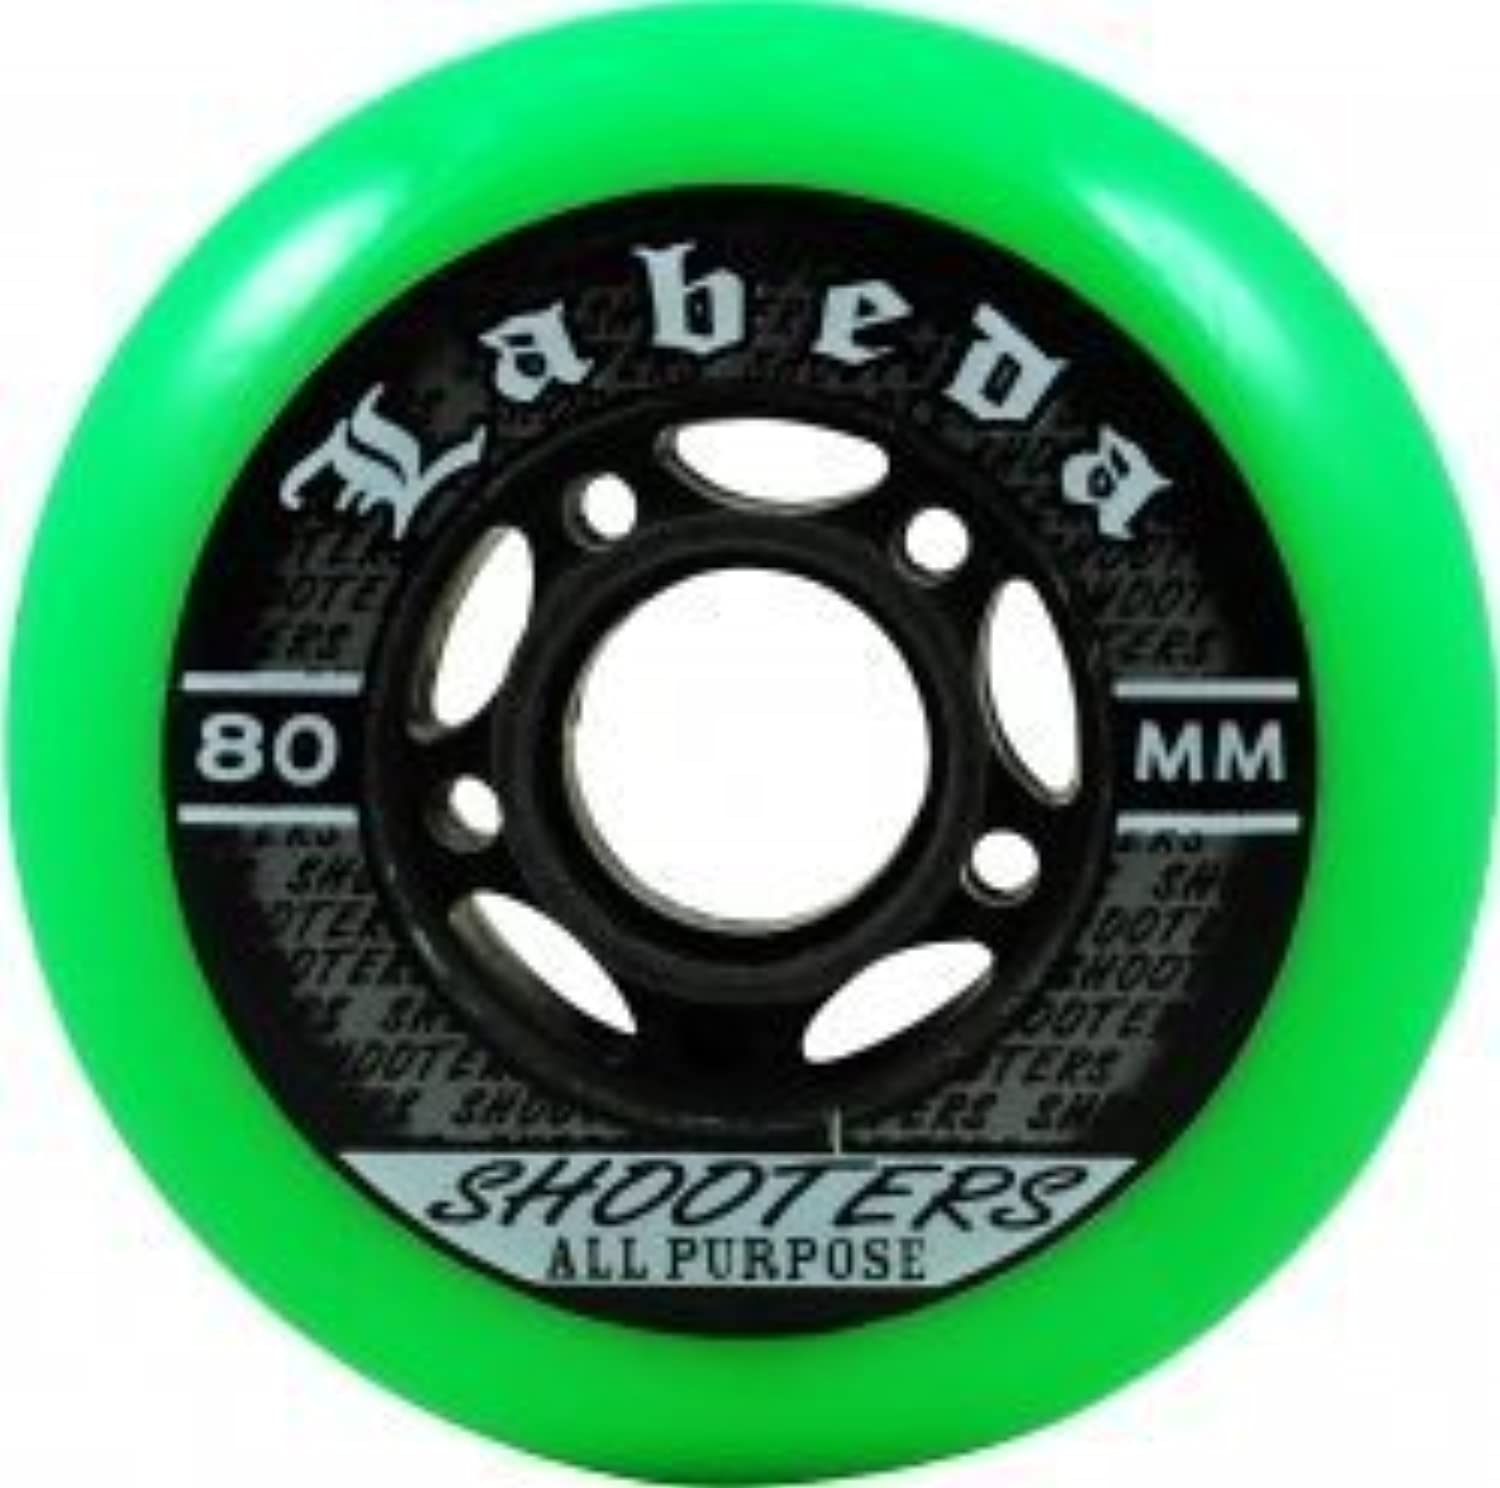 LABEDA Wtalons Inline Roller Hockey SHOOTER 80mm 83A x8 by Labeda